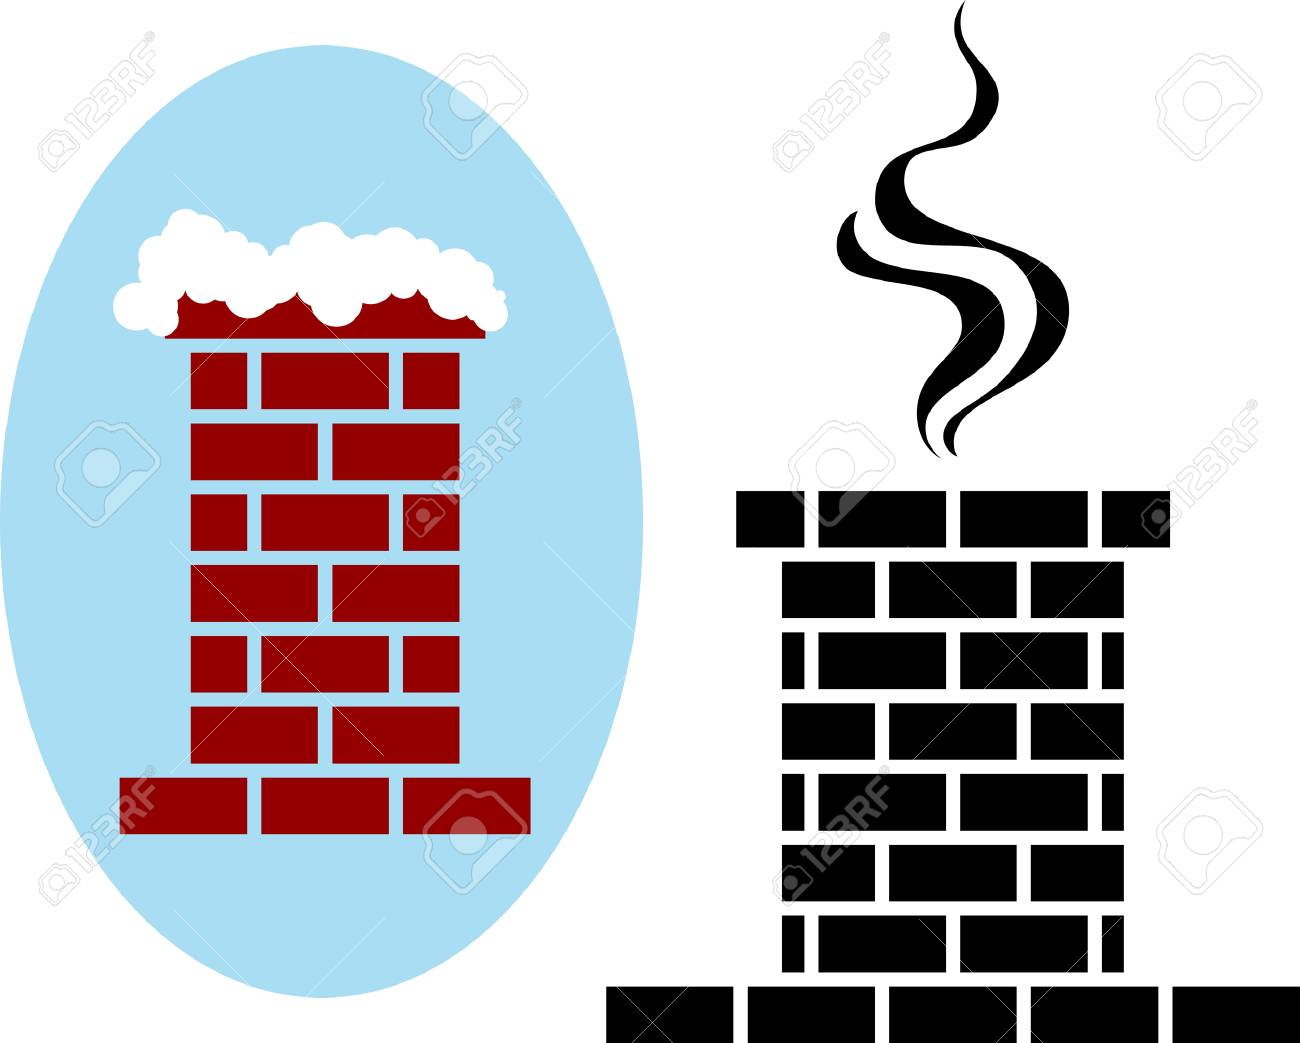 Brick Chimney Icon with Snow and Smoke Vector Illustration.